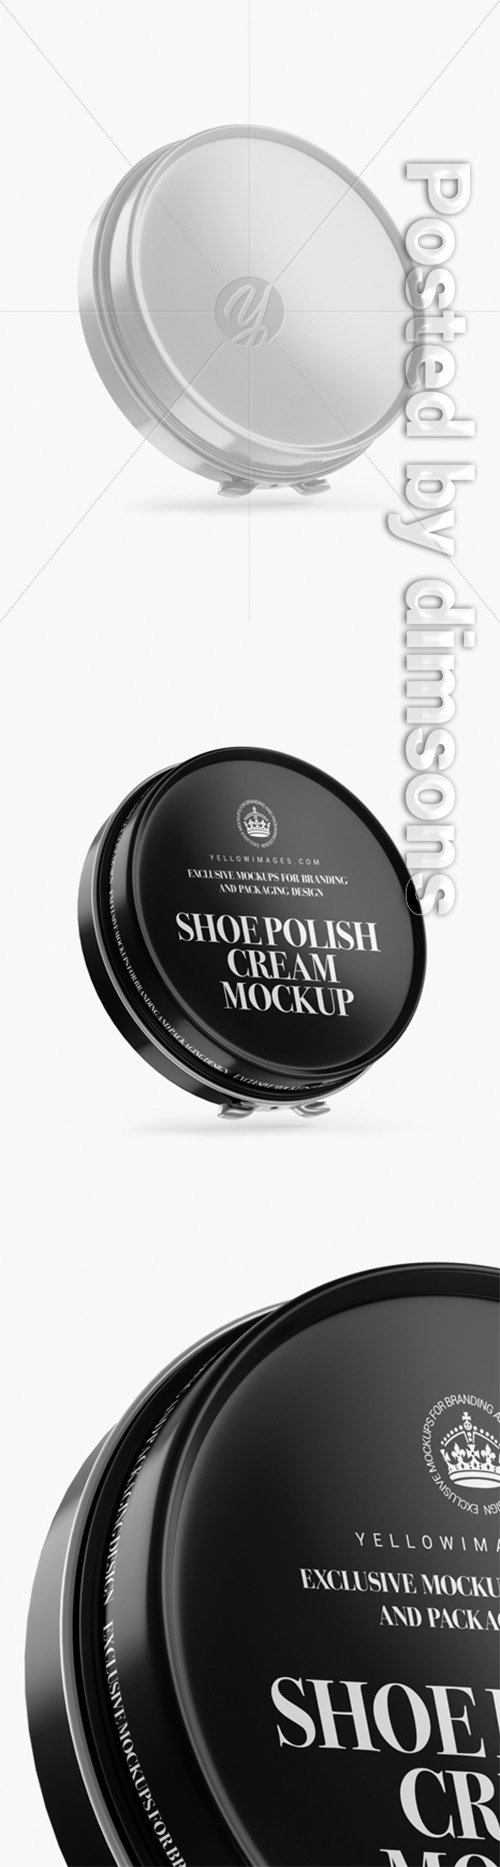 Glossy Shoe Polish Cream Jar Mockup 30502 TIF